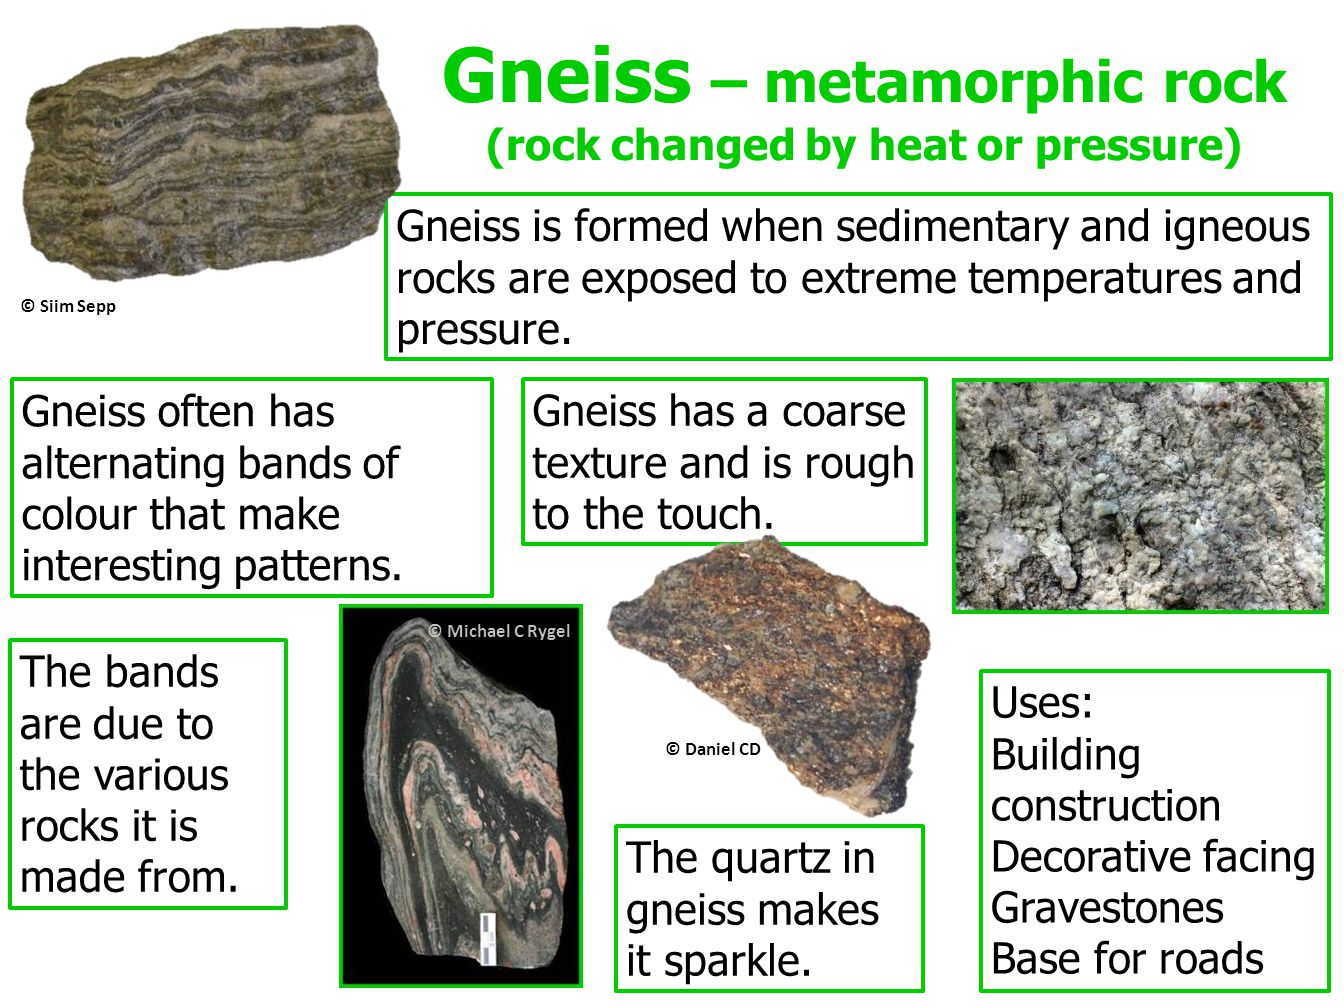 Gneiss – metamorphic rock (rock changed by heat or pressure)